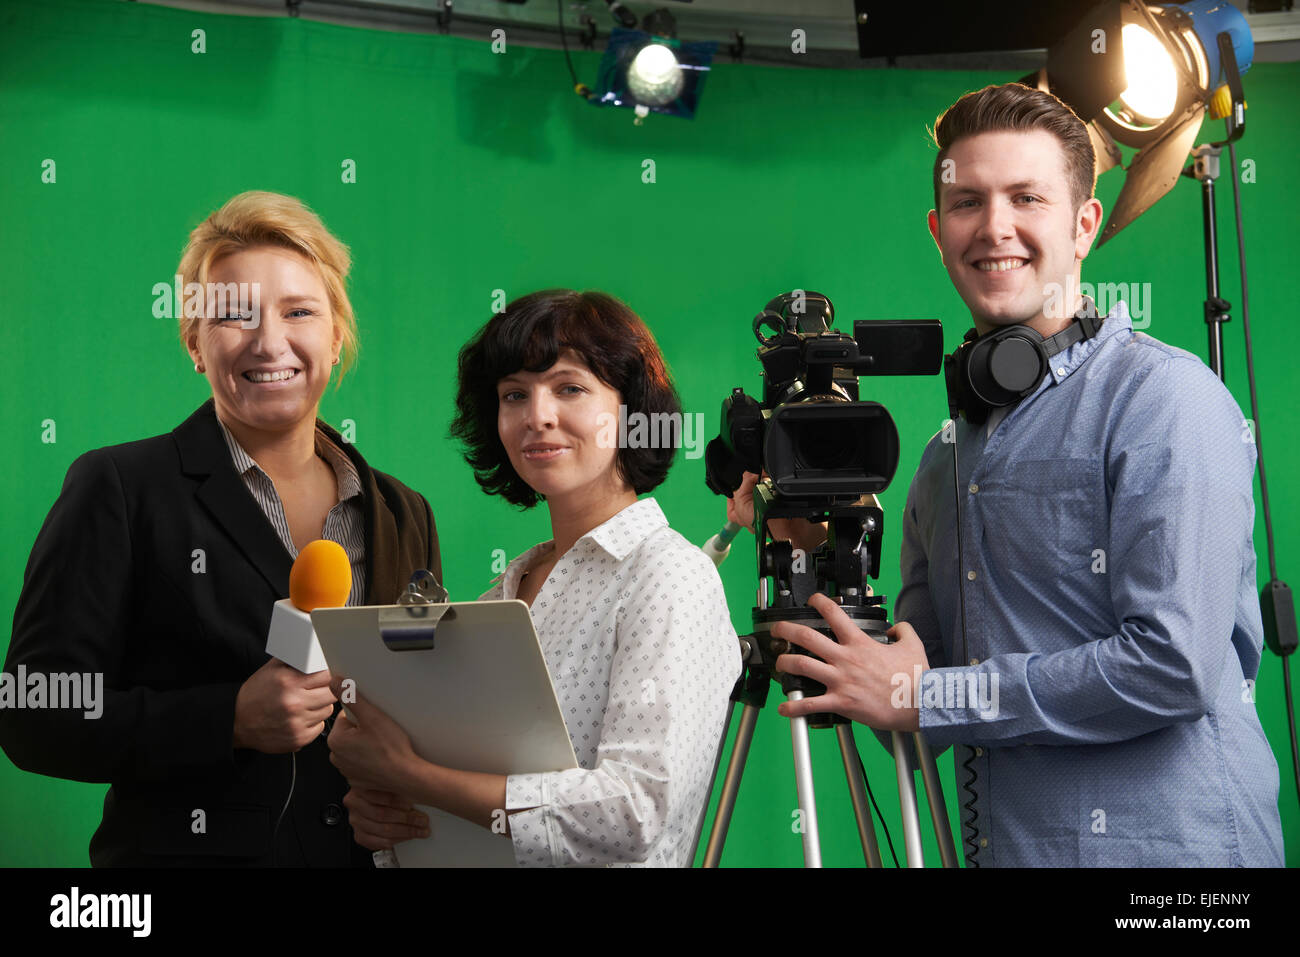 Portrait Of Cameraman With Presenter And Floor Manager In Television Studio - Stock Image